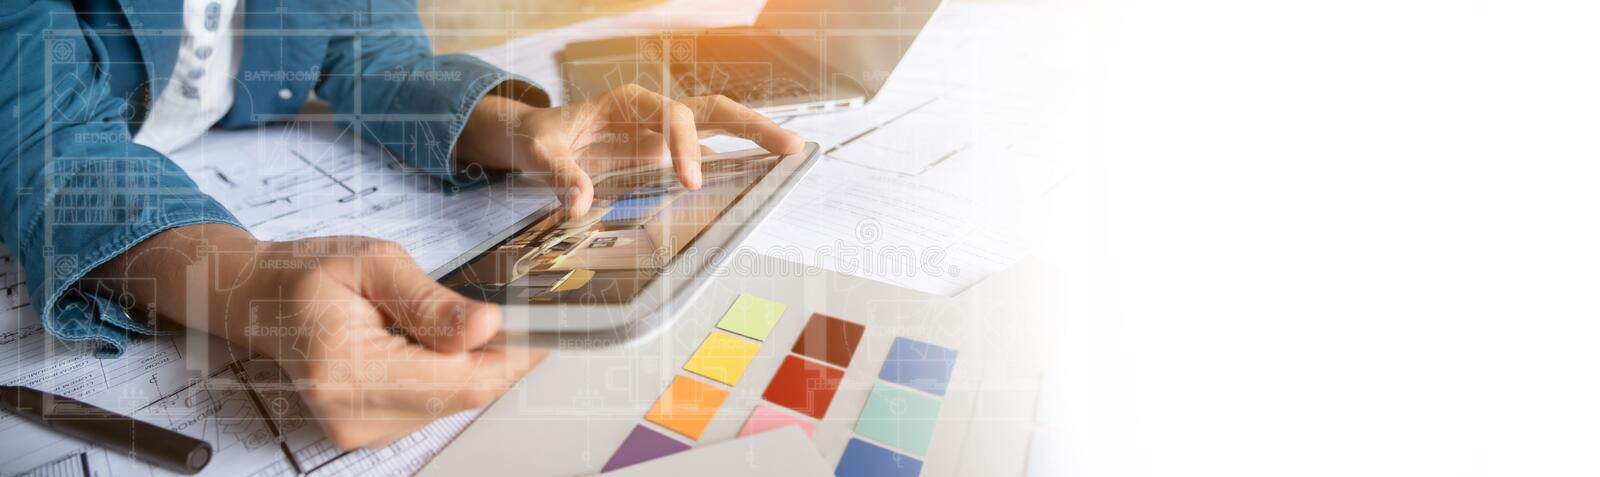 Architect working with digital tablet stock images